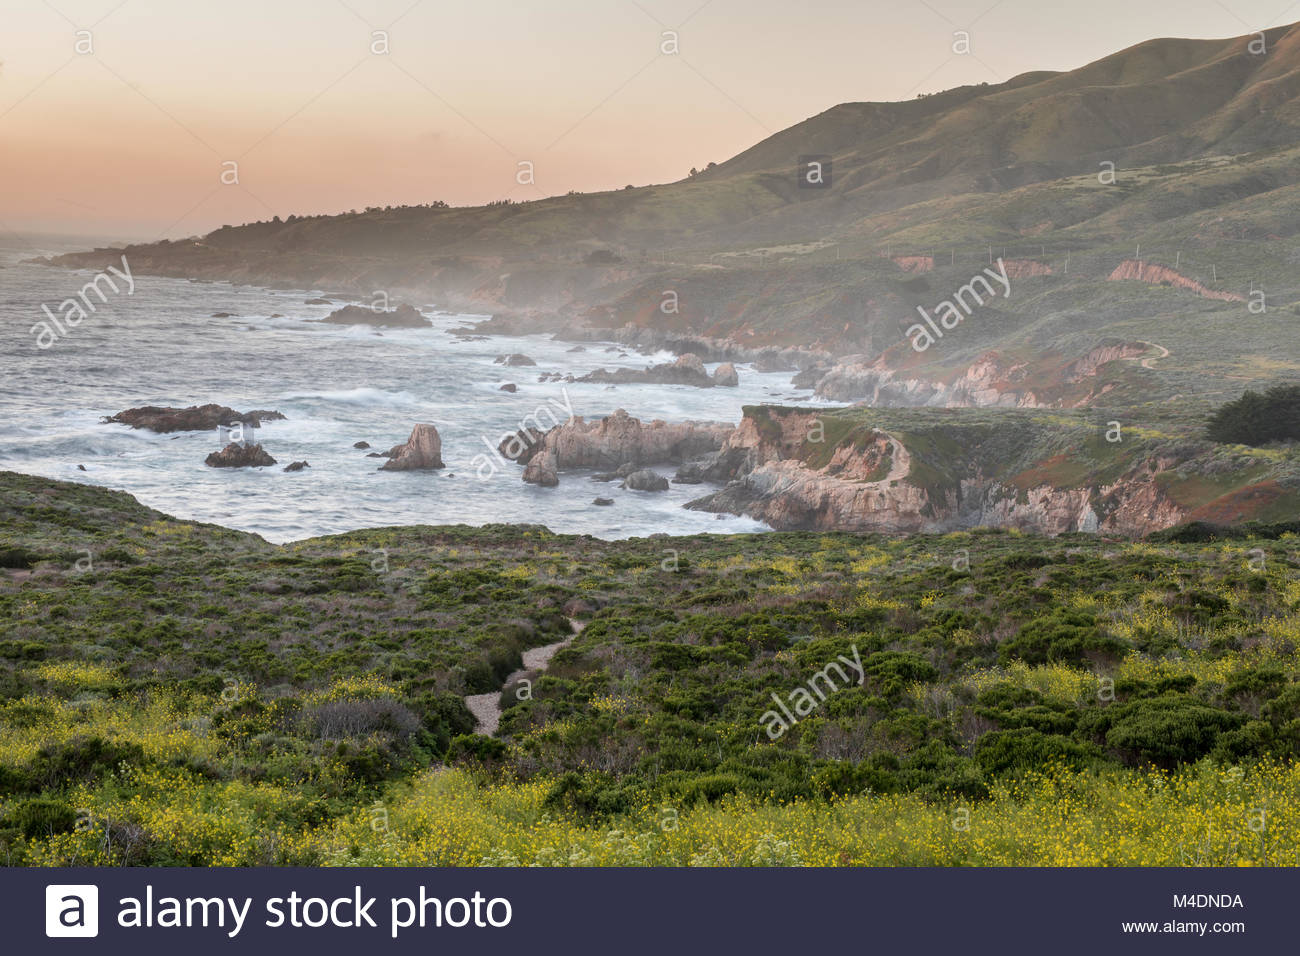 Rugged Coastline Sunset of Carmel-By-The-Sea. - Stock Image